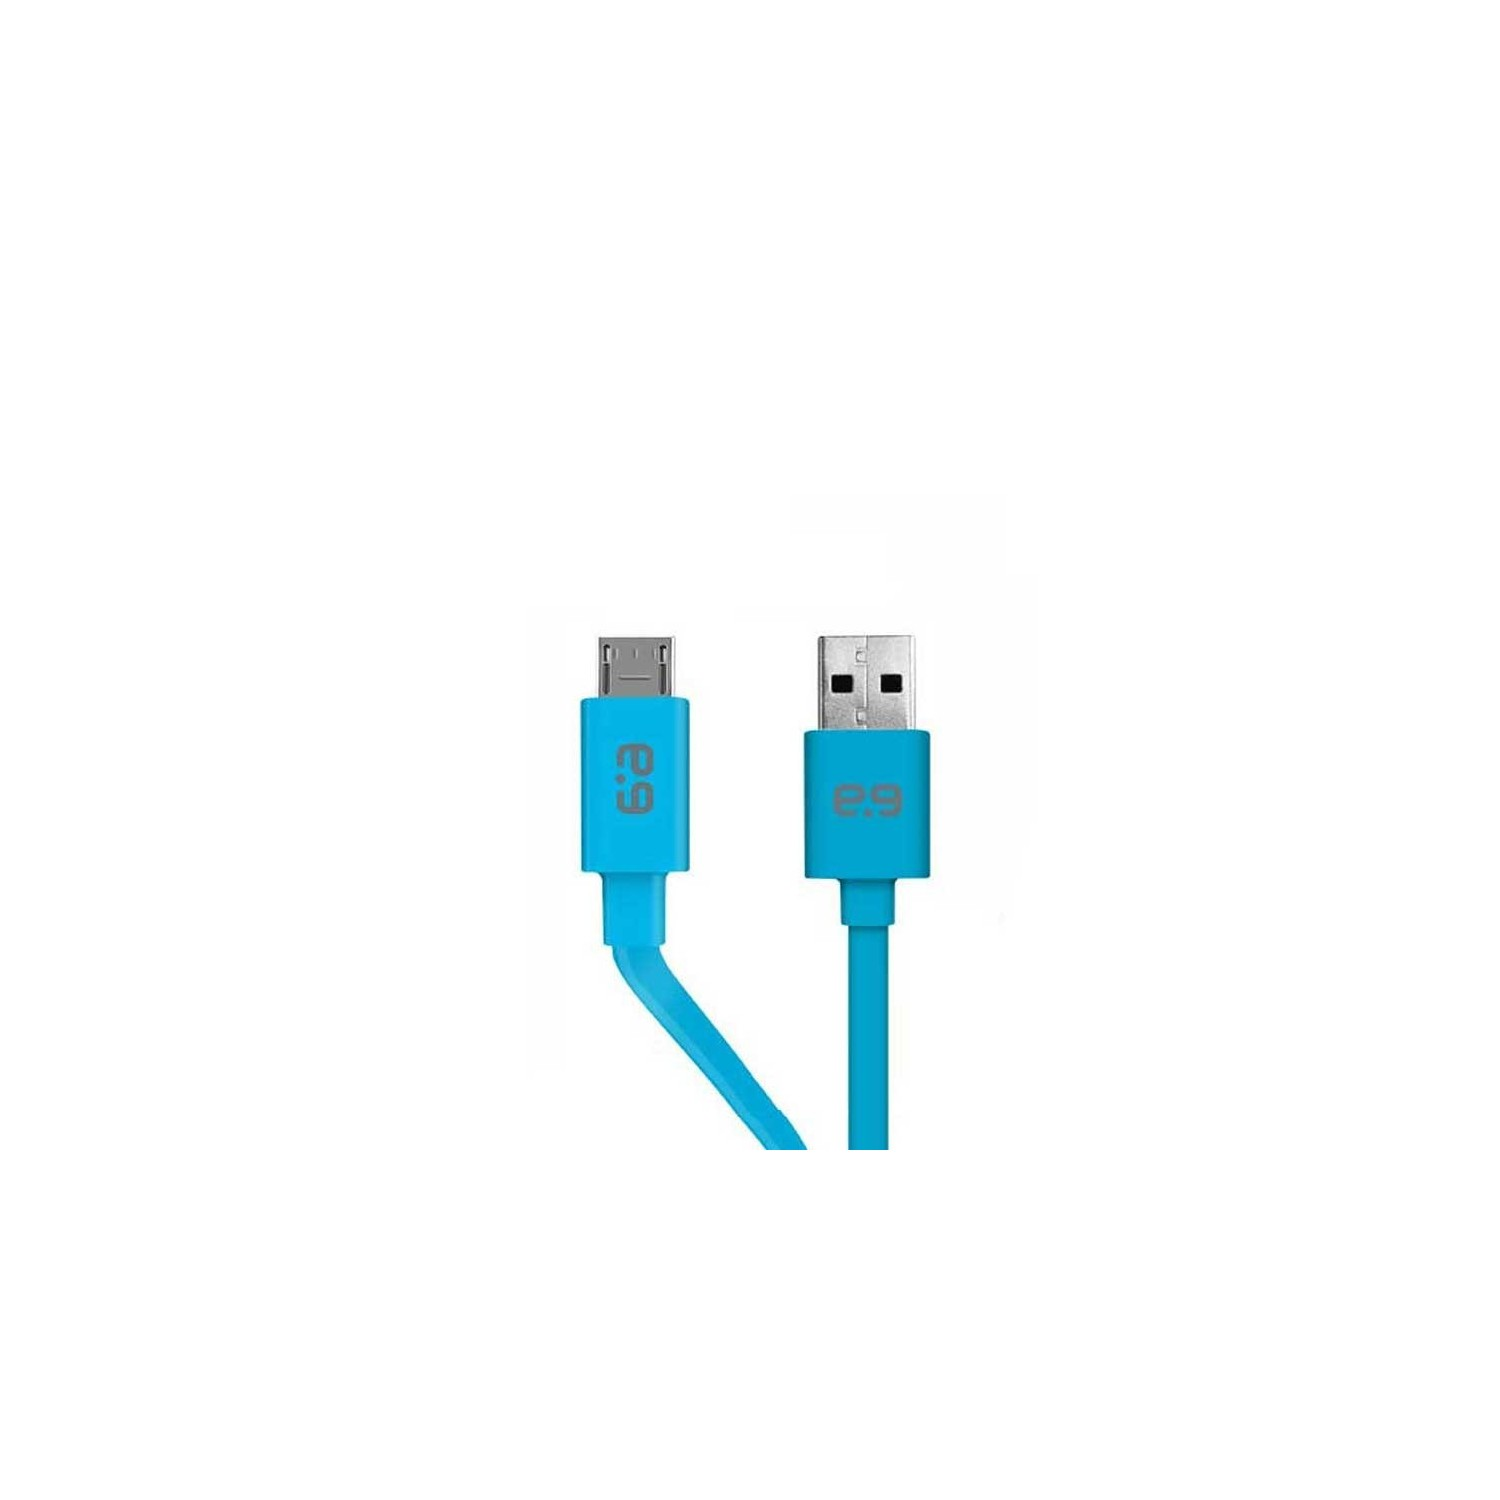 SYNC CABLE - Puregear Micro USB Flat Universal Cable BLUE